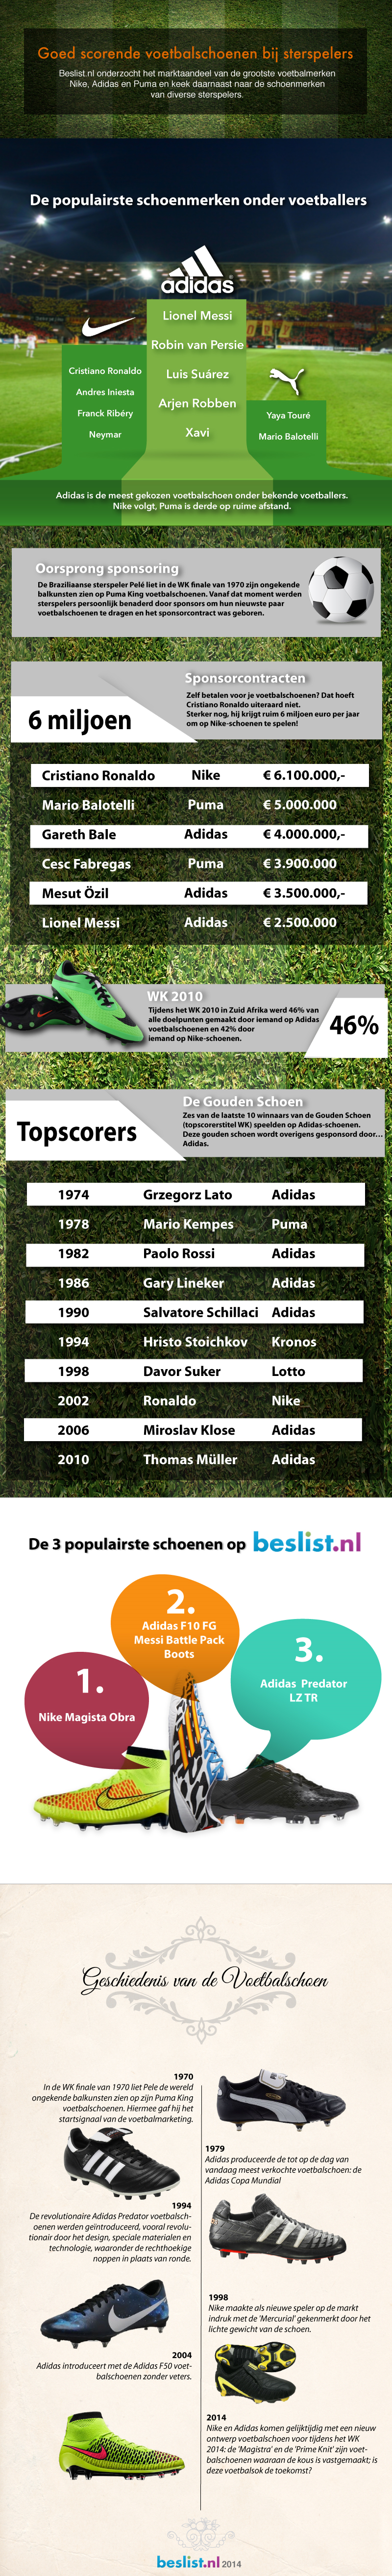 Voetbal Infographic